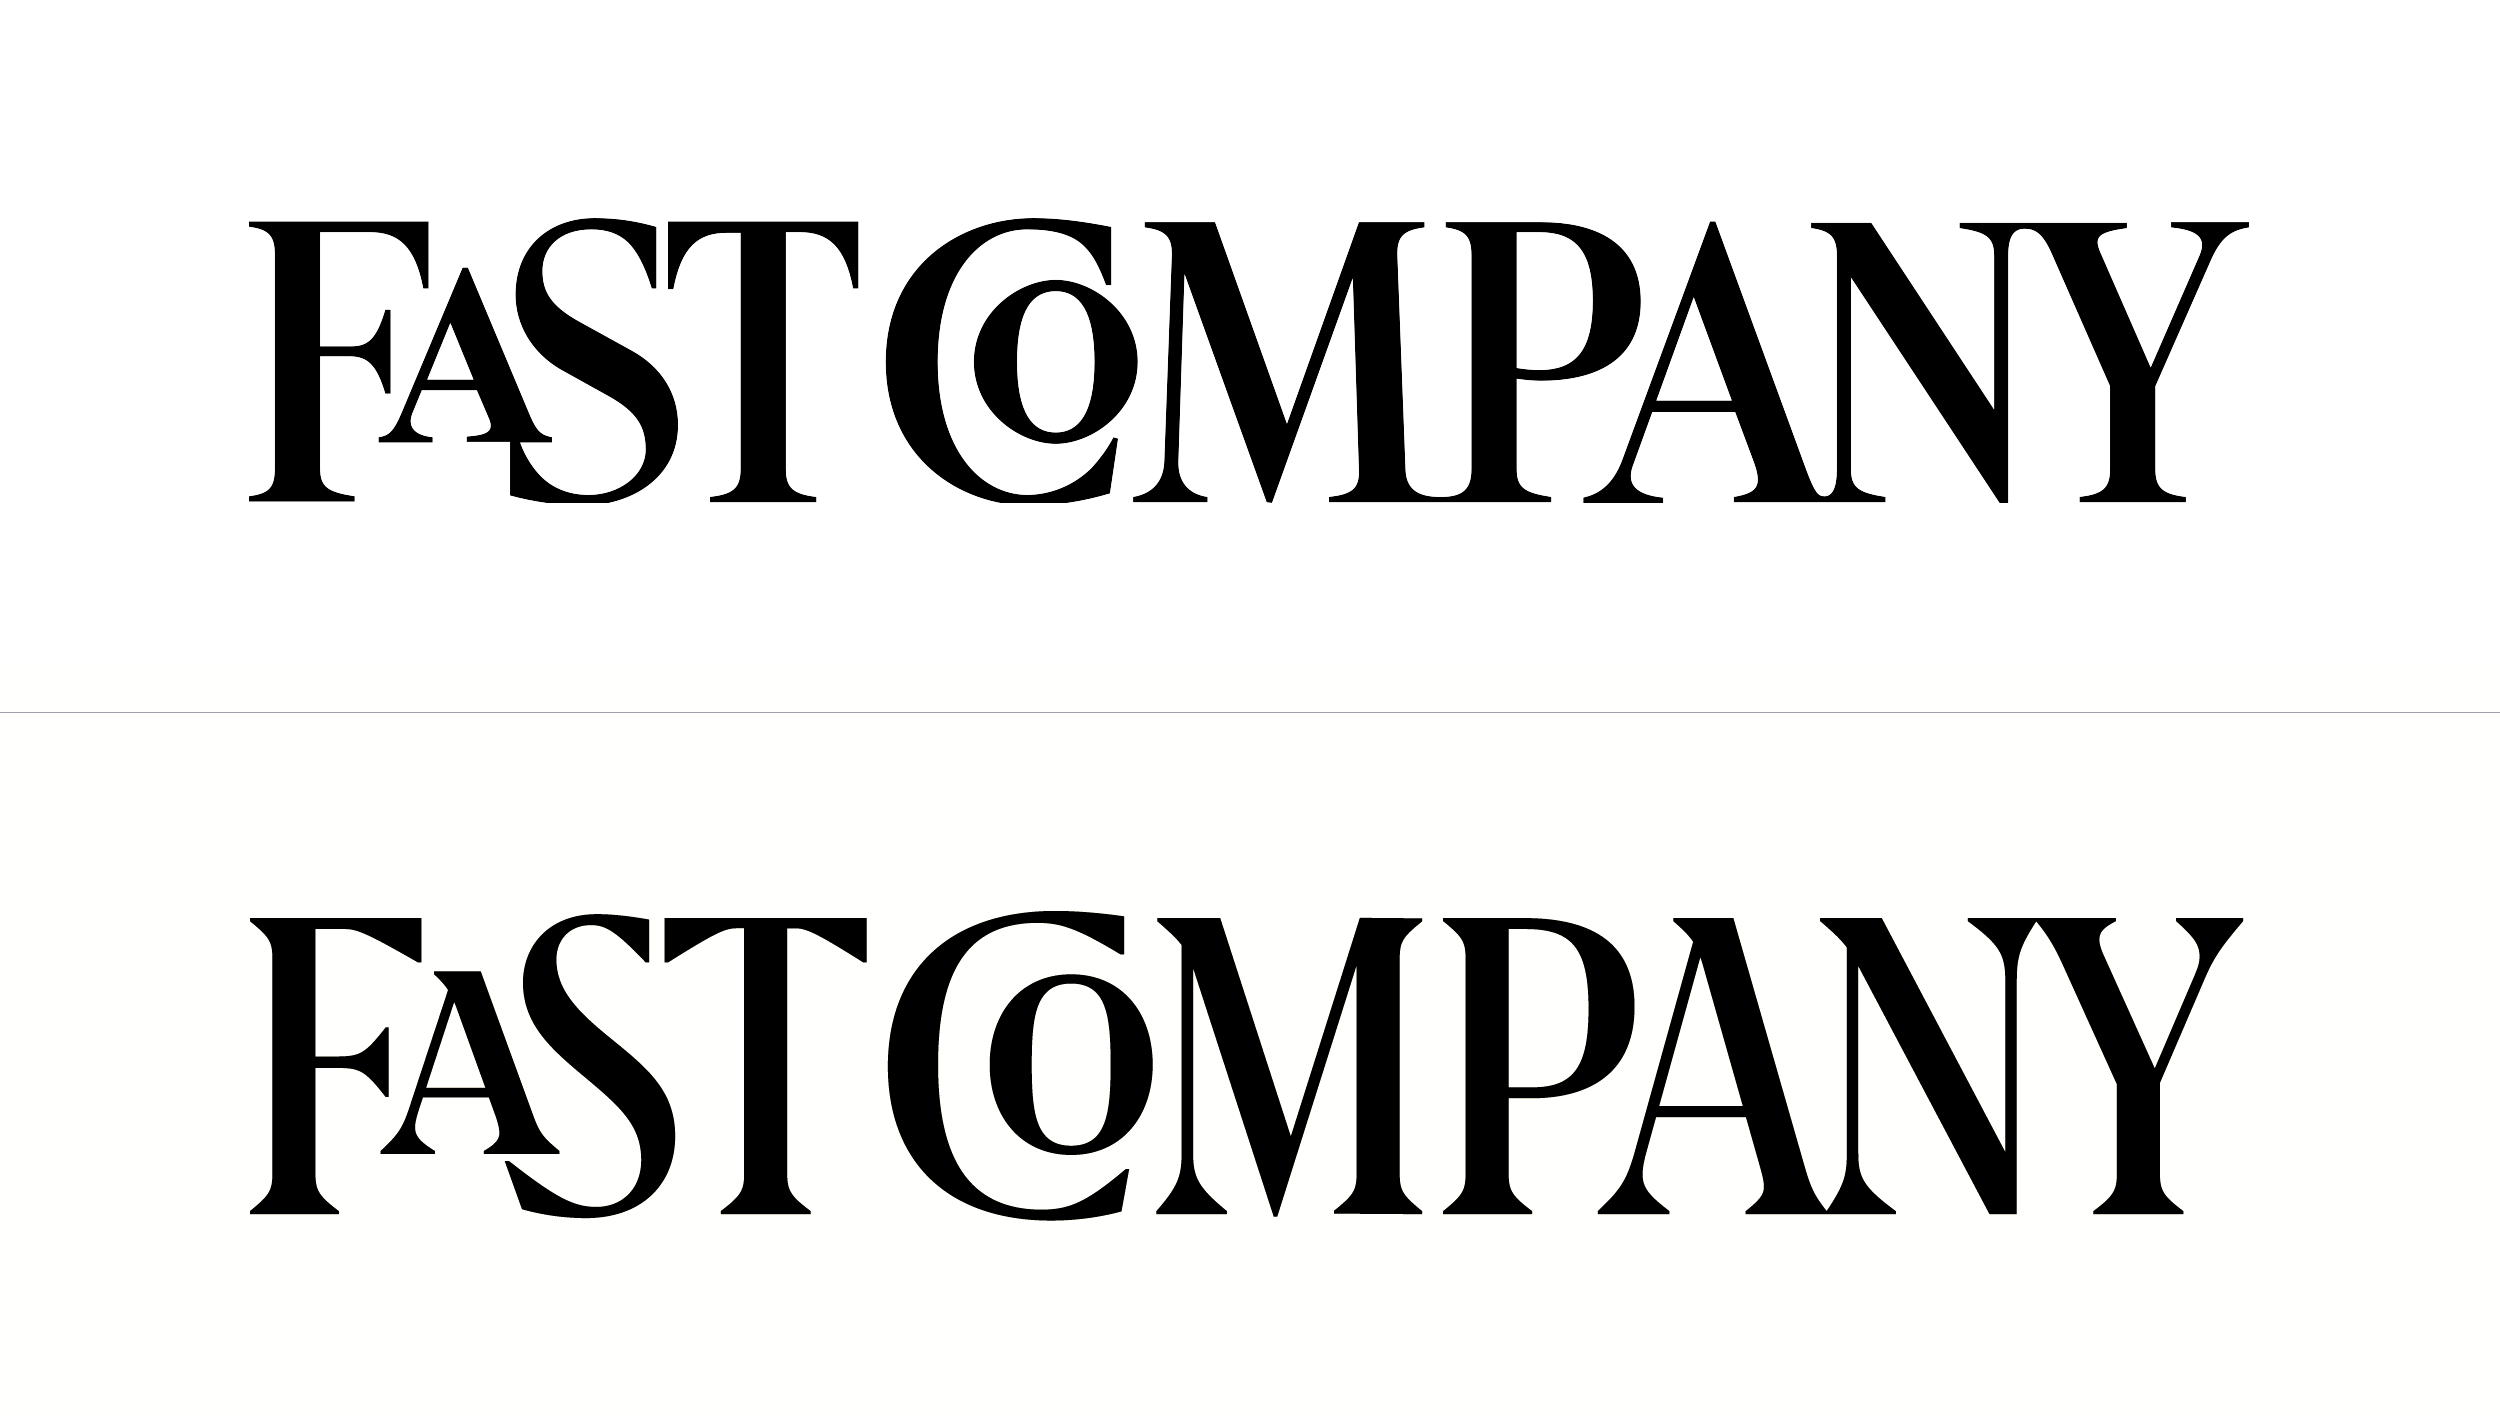 New Logo For Fast Company By Rui Abreu And In House Graphic Design Logo Pretty Words Lettering